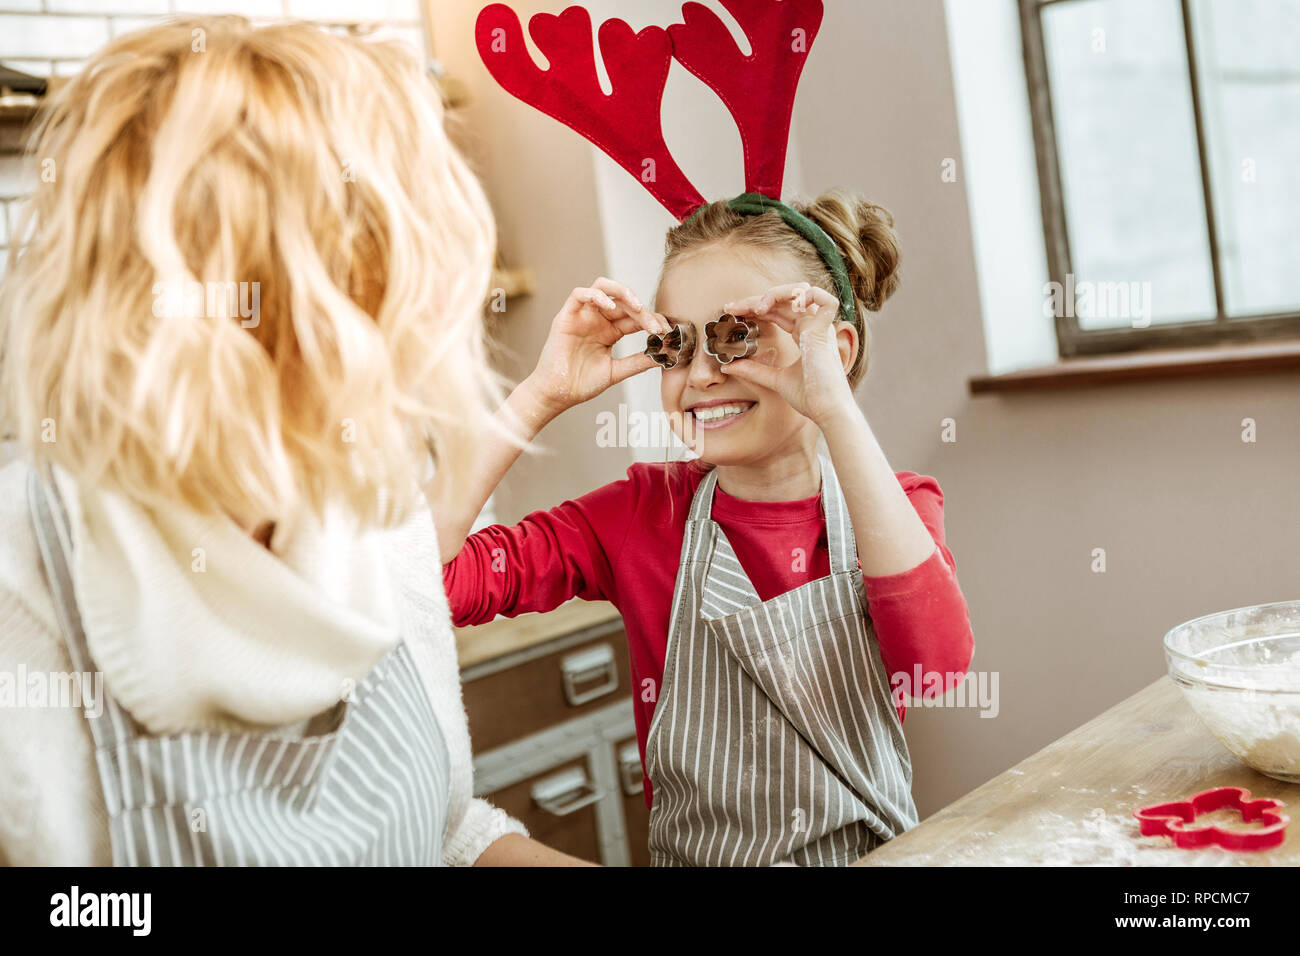 Little child with wide smile putting metal form for baking Stock Photo